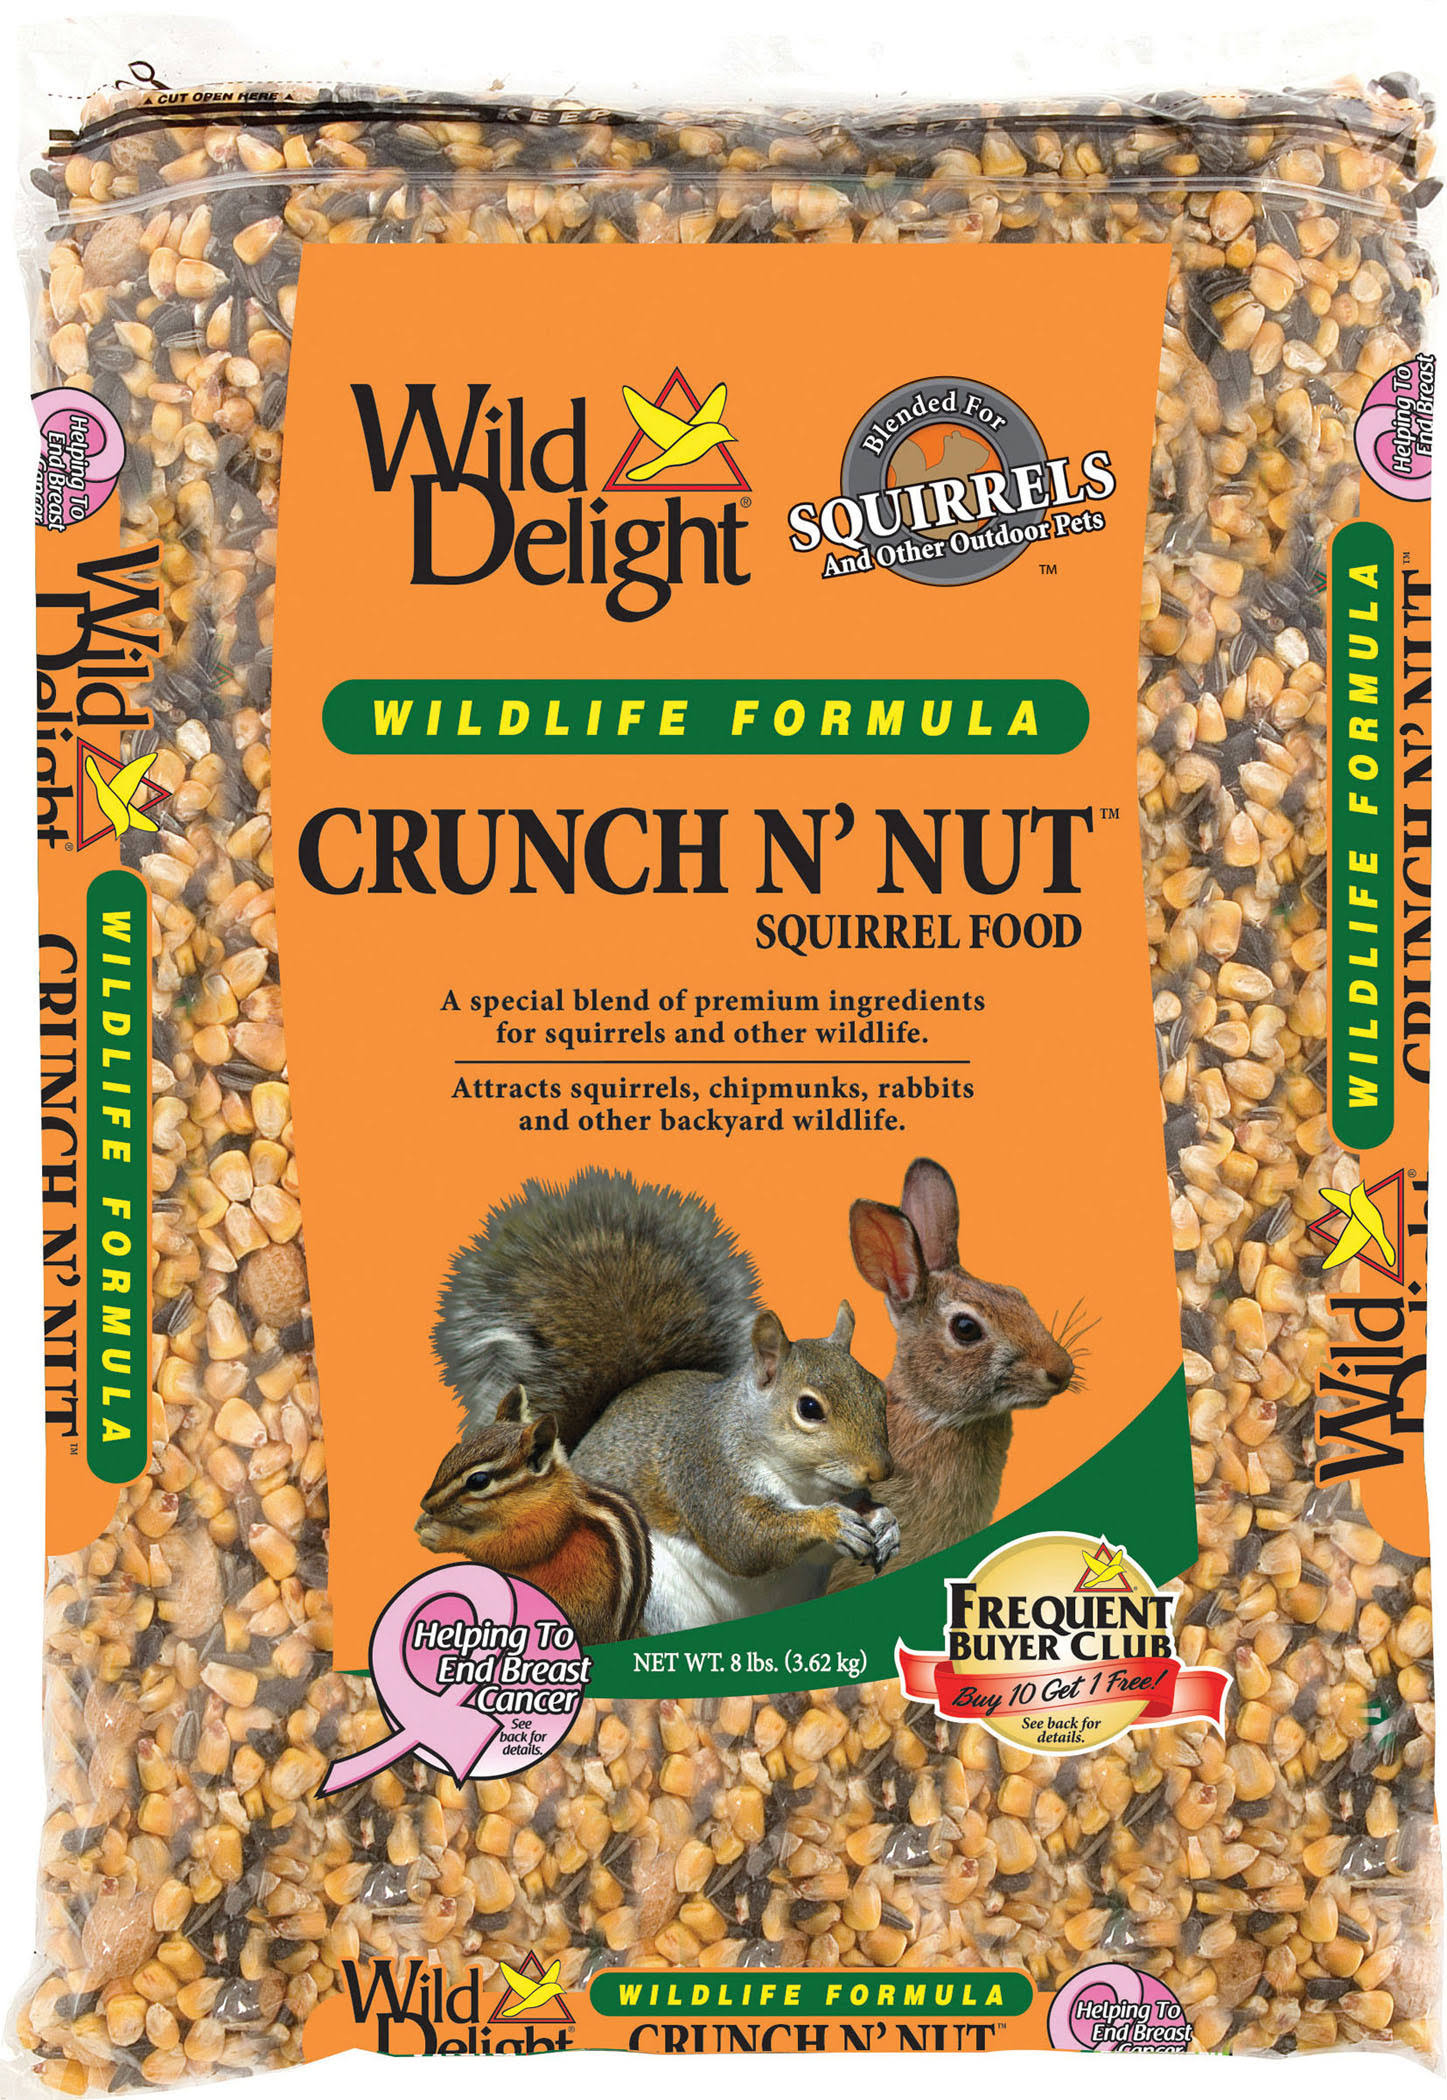 Wild Delight Crunch N Nut Squirrel Food - 8lbs